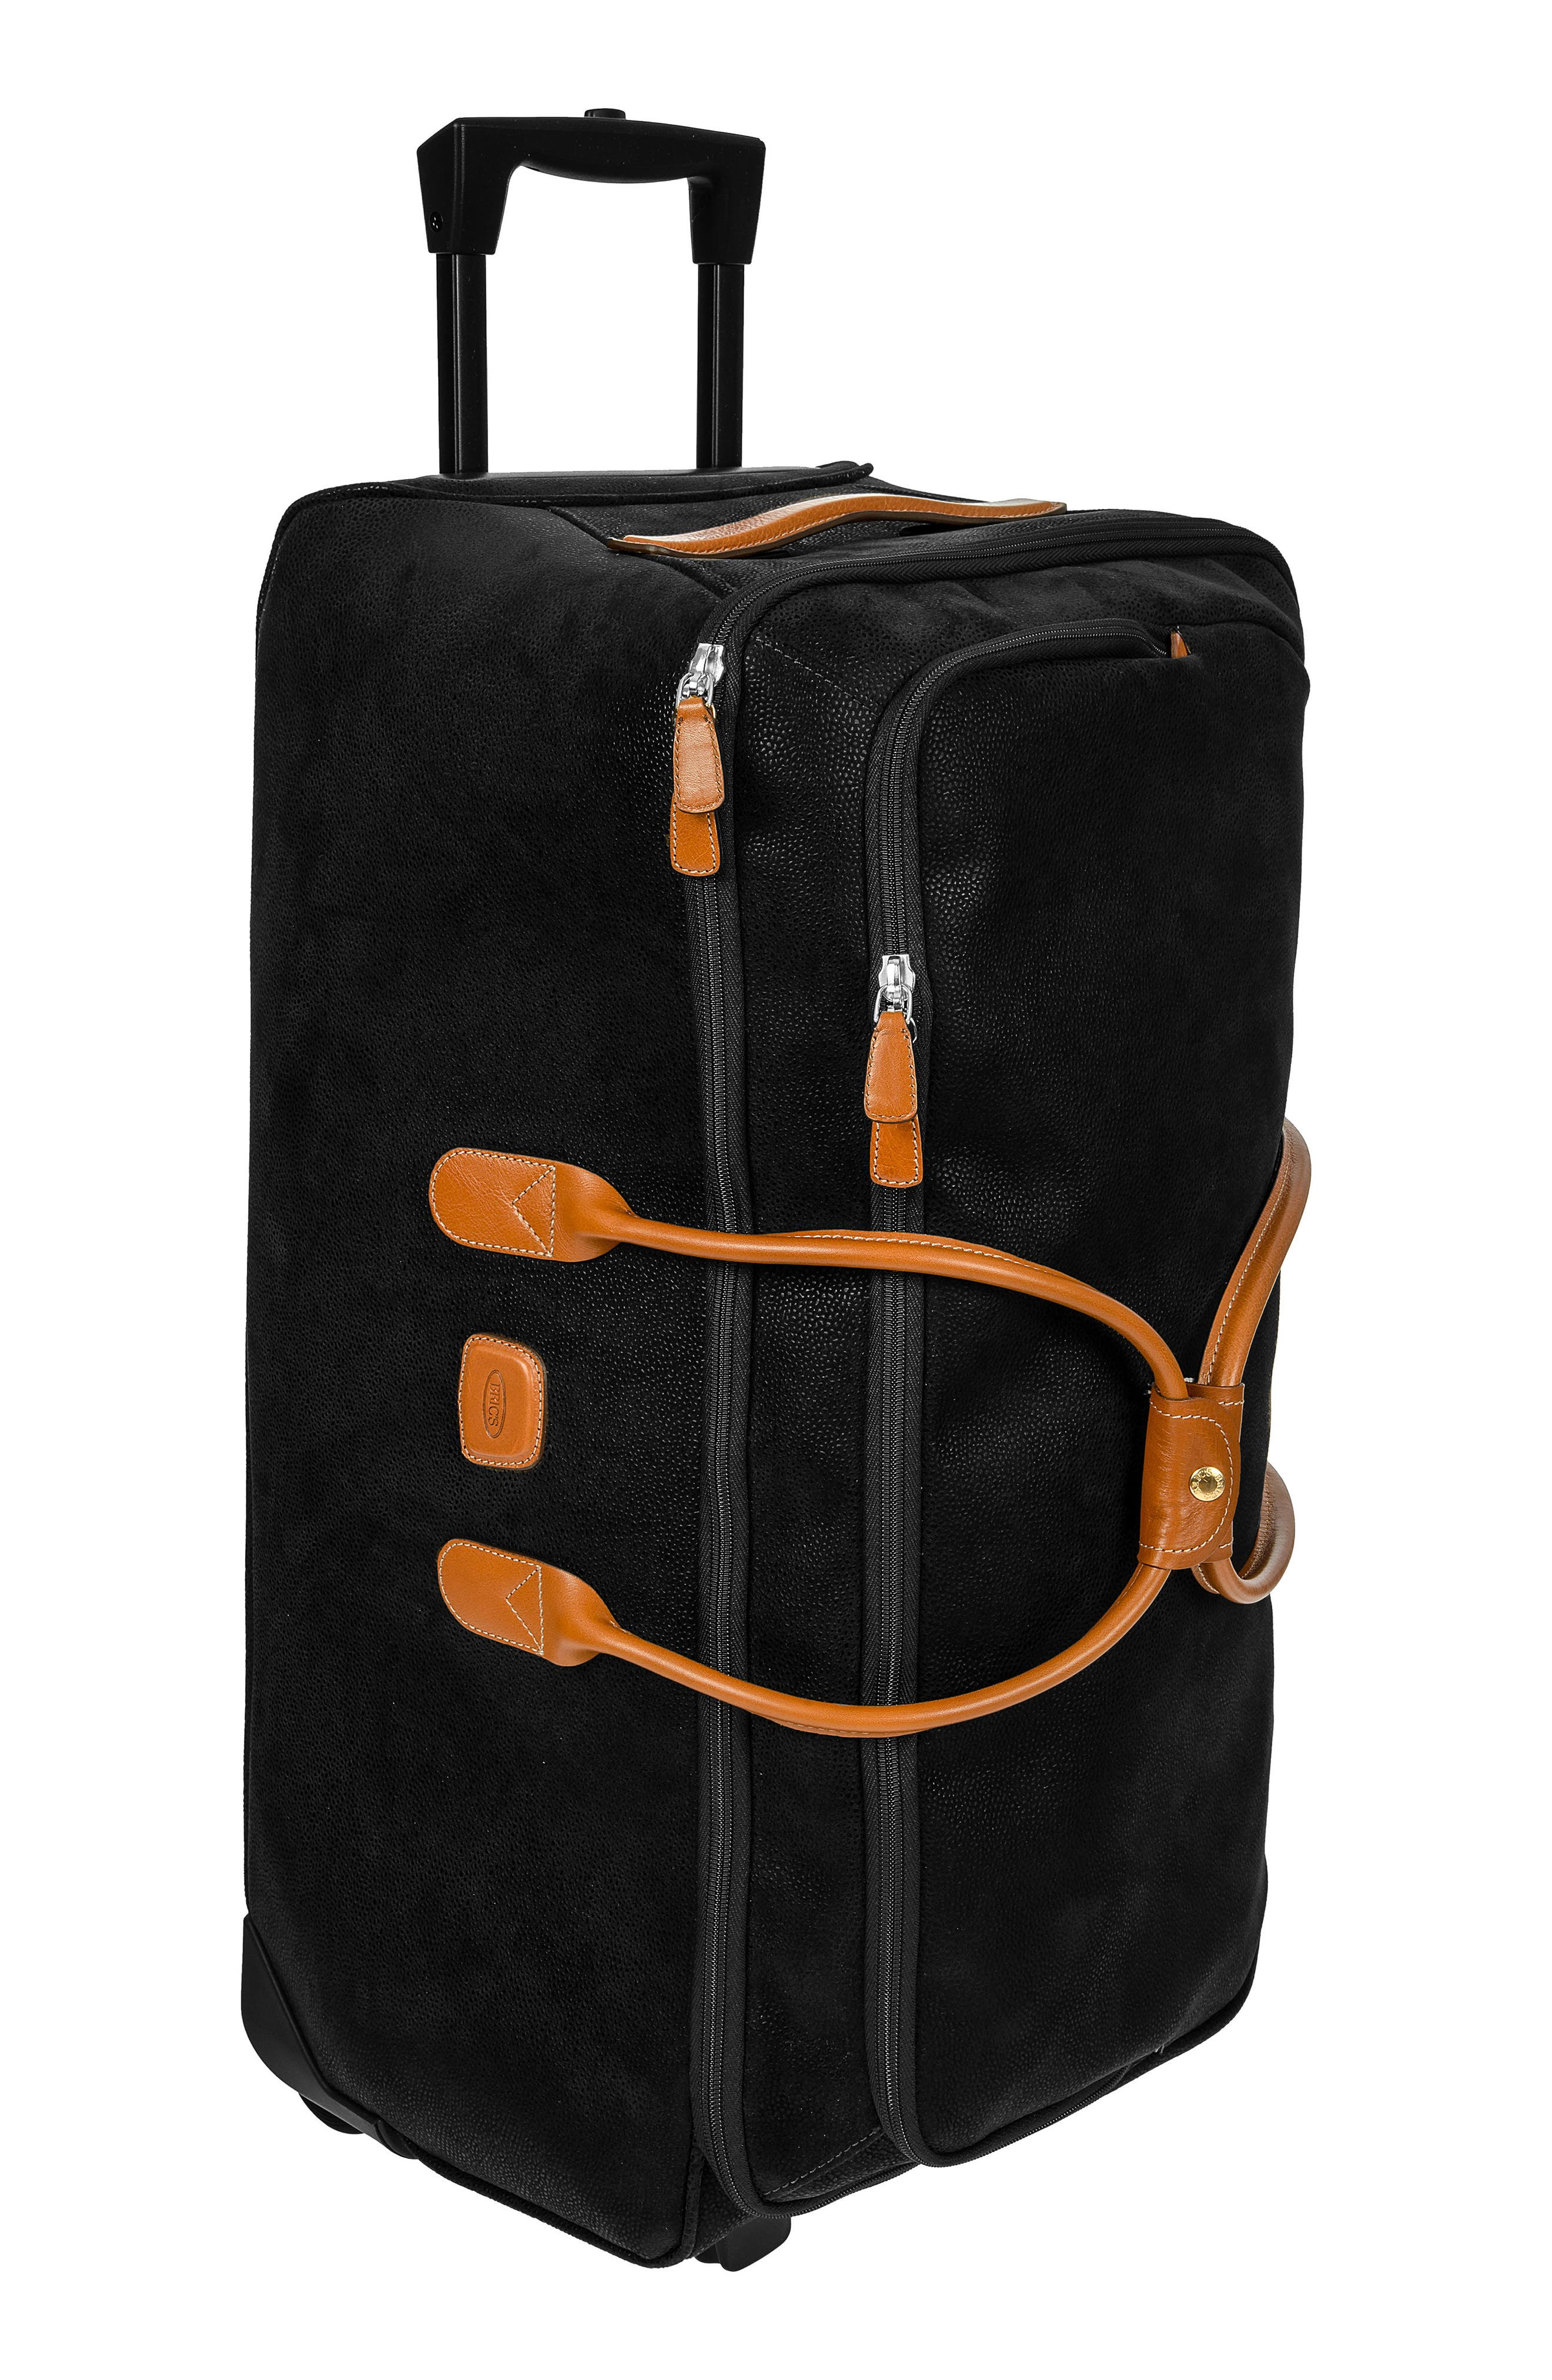 Alternate Image 1 Selected - Bric's Life Collection 28-Inch Rolling Duffel Bag